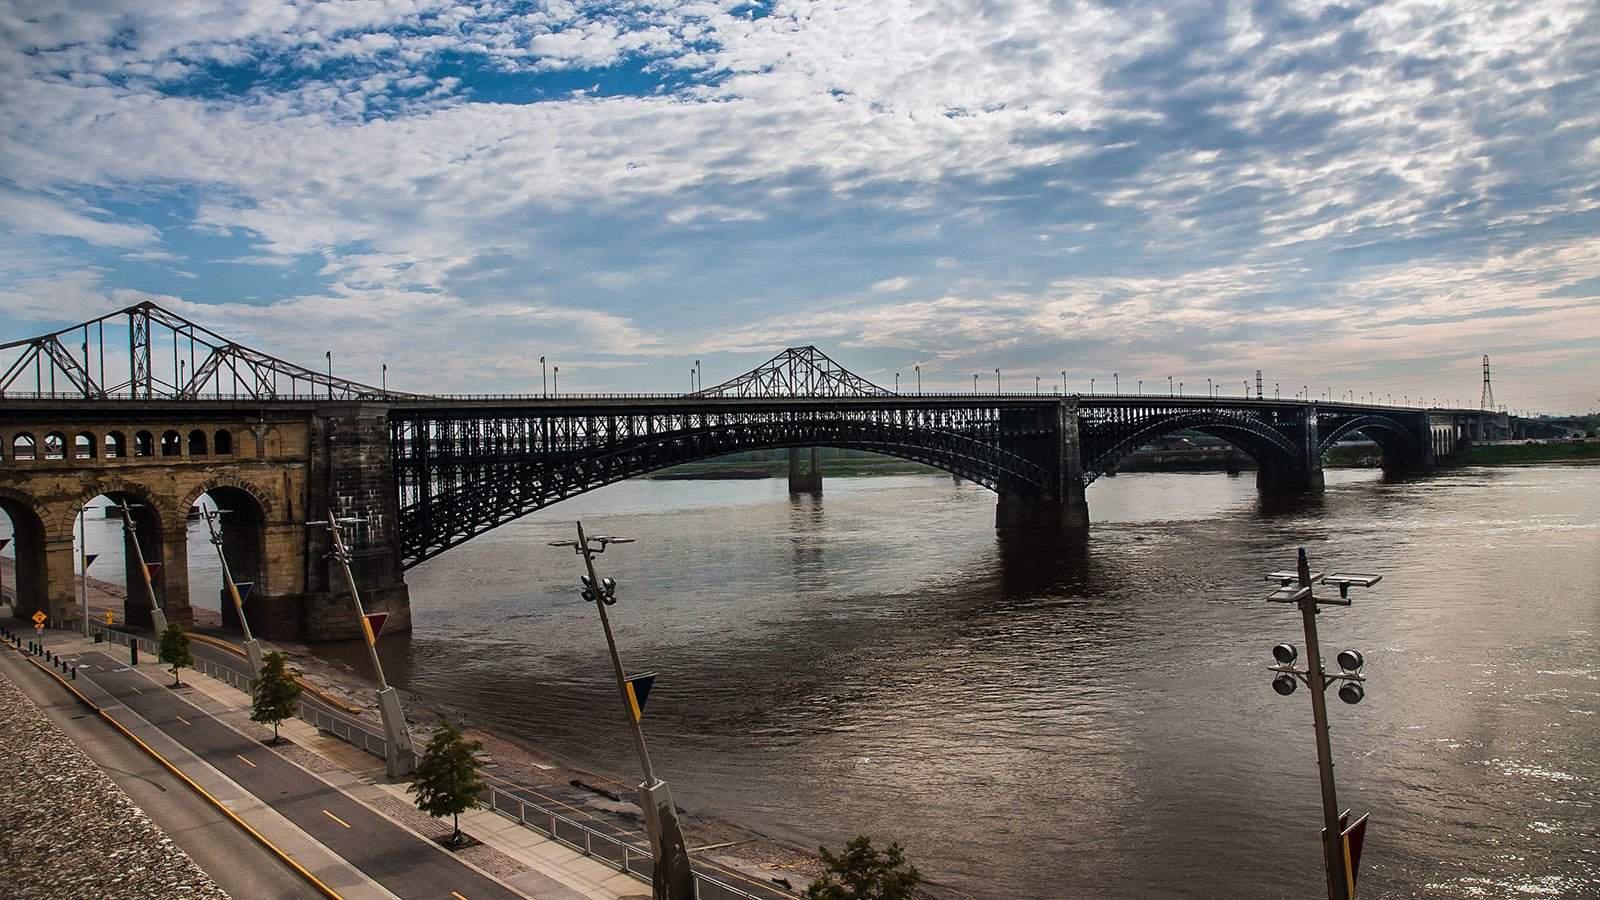 The full span of the Eads Bridge, an arch bridge over the Mississippi River connecting St. Louis, Missouri, and East St. Louis, Illinois, 2017